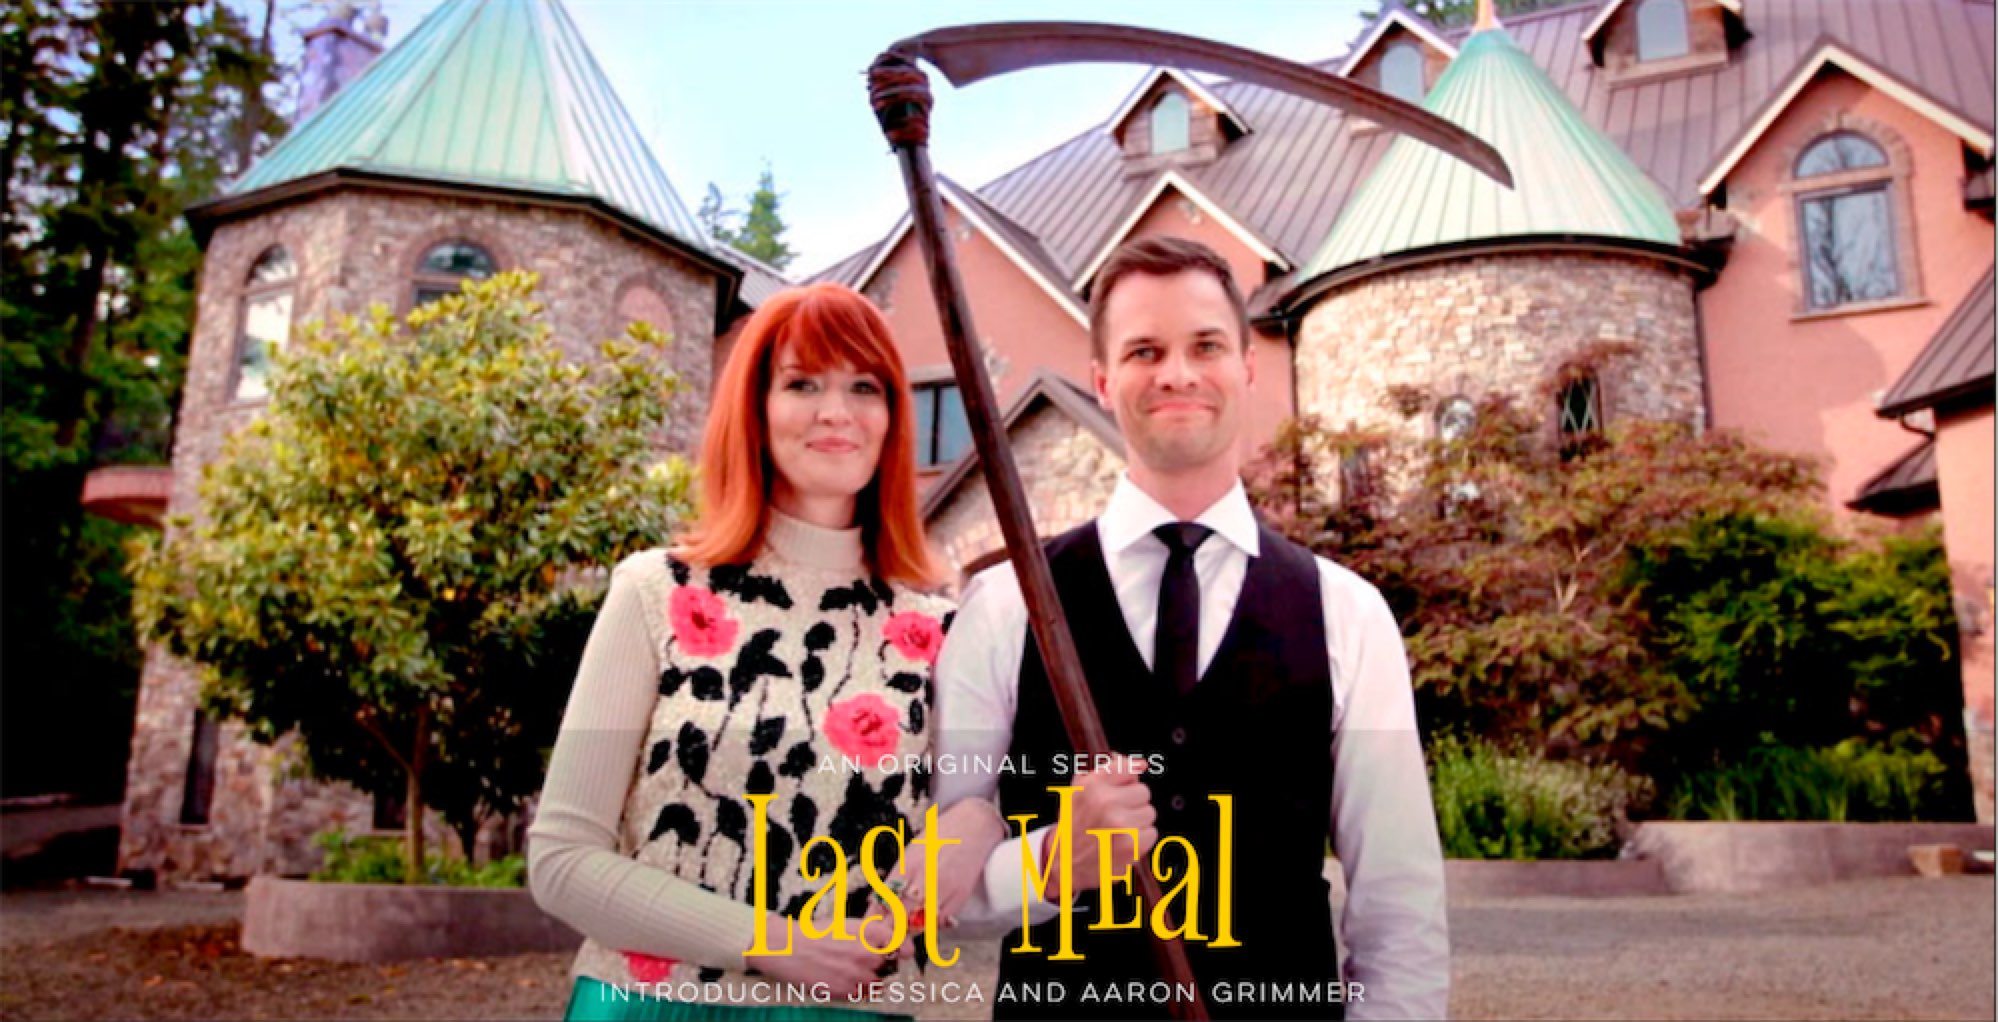 Coming early 2017, Last Meal is a six-episode web series that explores the deadly dinner parties of Aaron Grimmer, the son of the Grim Reaper, and his emotionally quirky, fashion-forward wife Jessica.   Captions and/or Subtitles Available Online